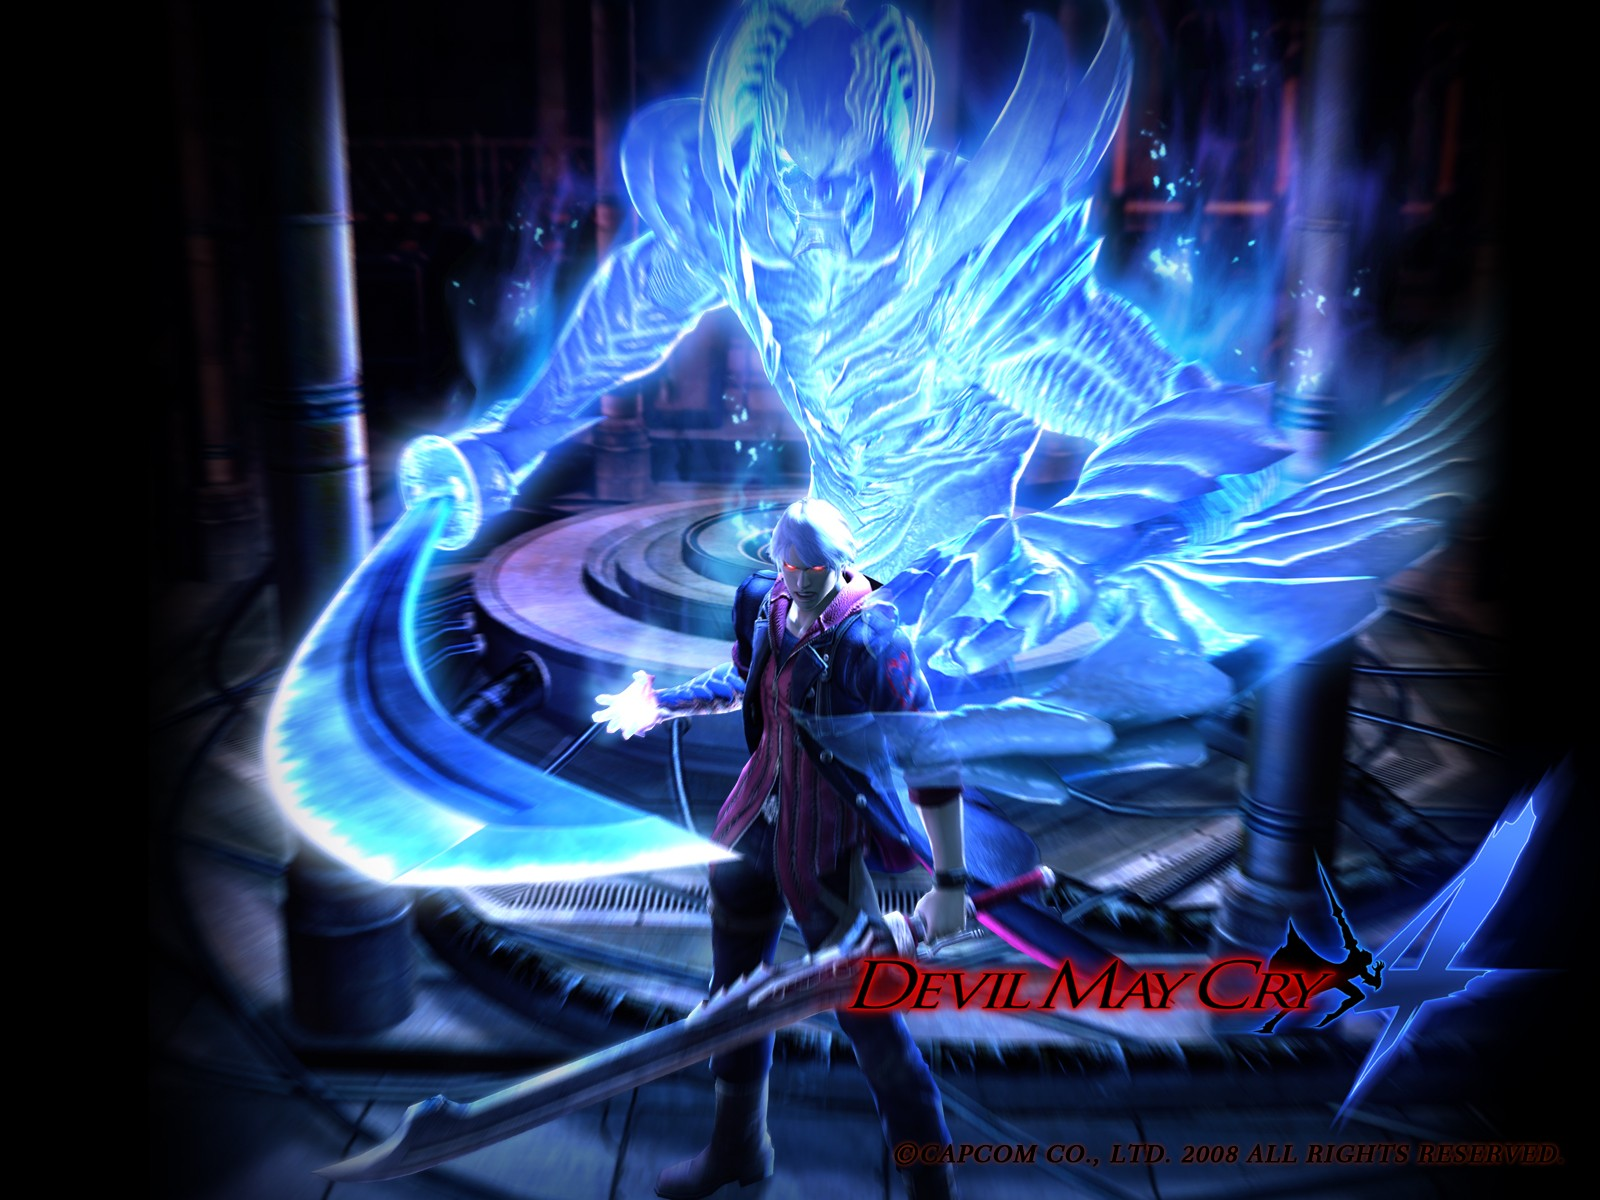 http://4.bp.blogspot.com/-t1EEQaCCtlA/UKETizuw3sI/AAAAAAAAQ8k/irDvld4gpRY/s1600/devil-may-cry-4-wallpaper-wp20080208-1.jpg